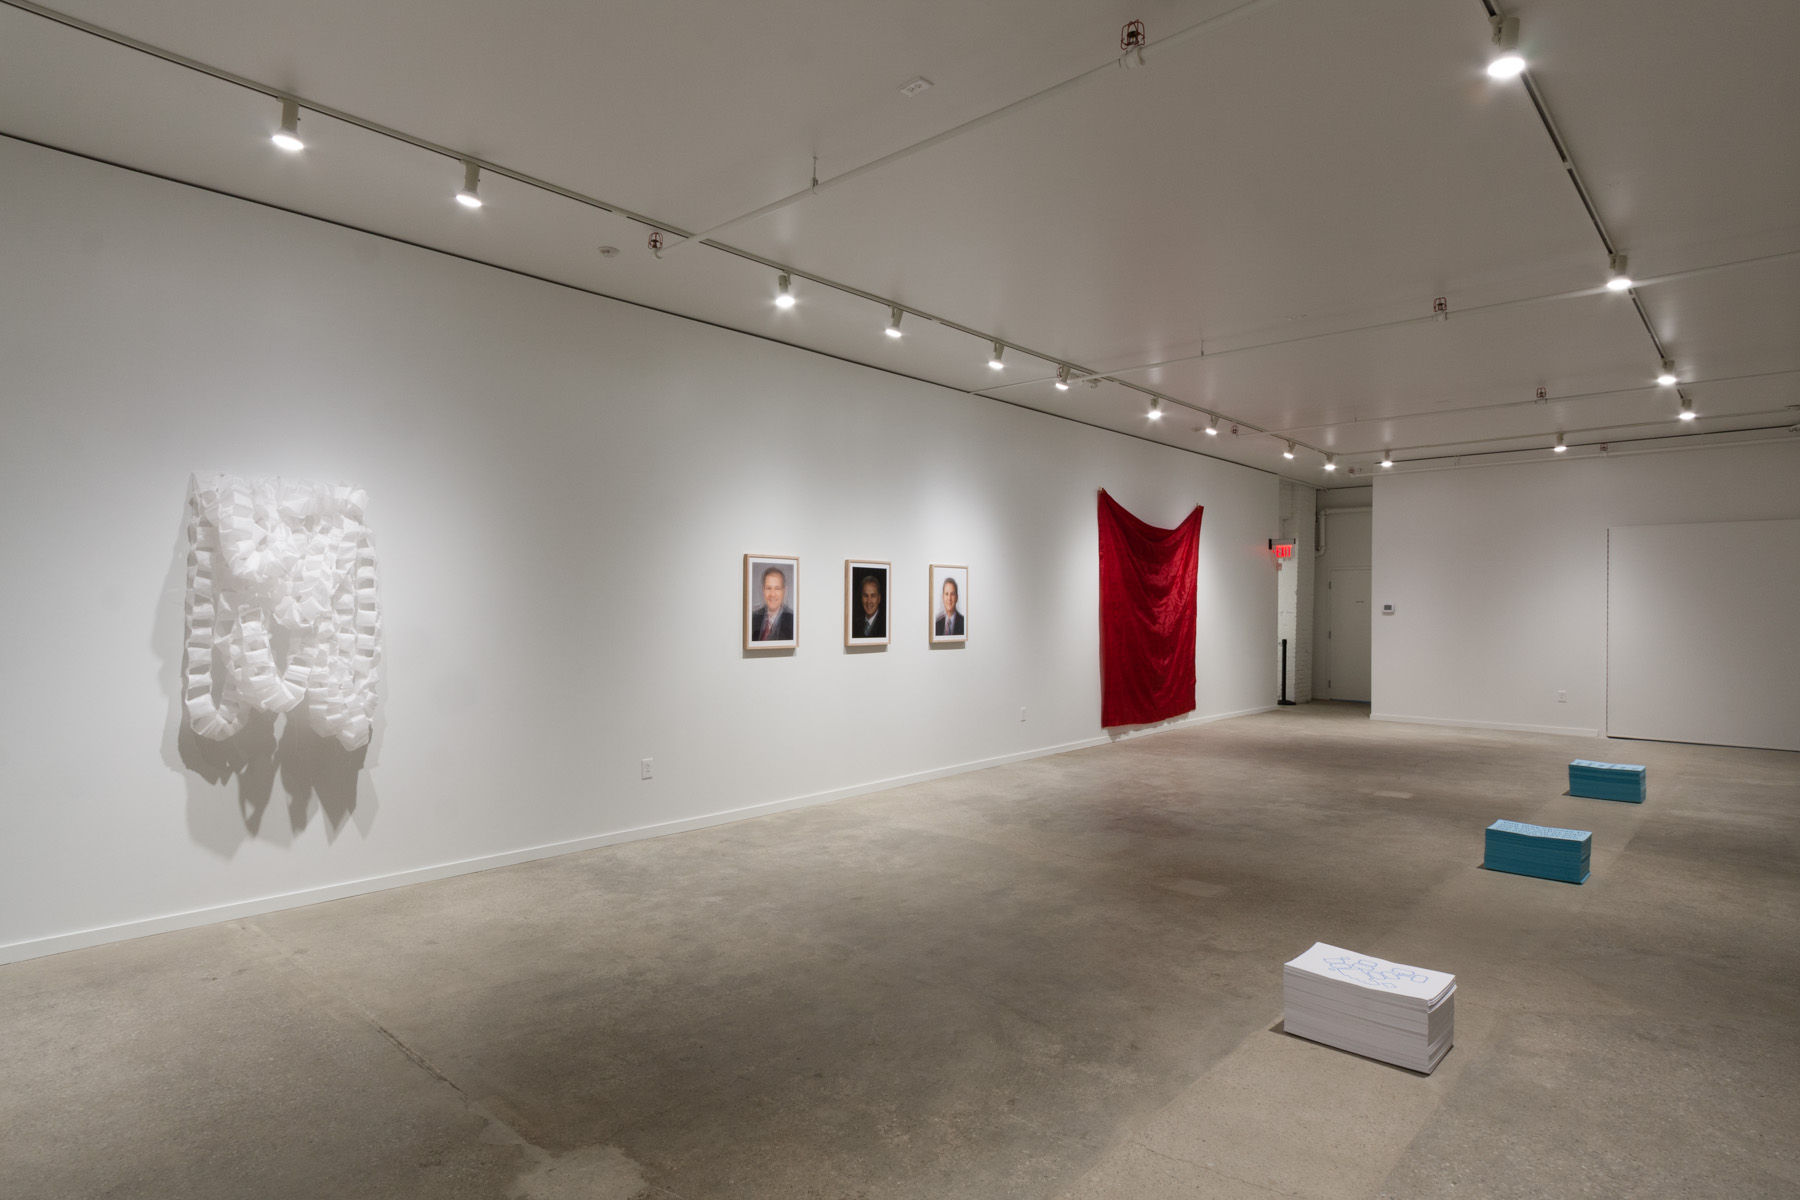 The George Gund Foundation gallery with artwork by Anthony Warnick. Image by Jerry Mann, courtesy of SPACES.